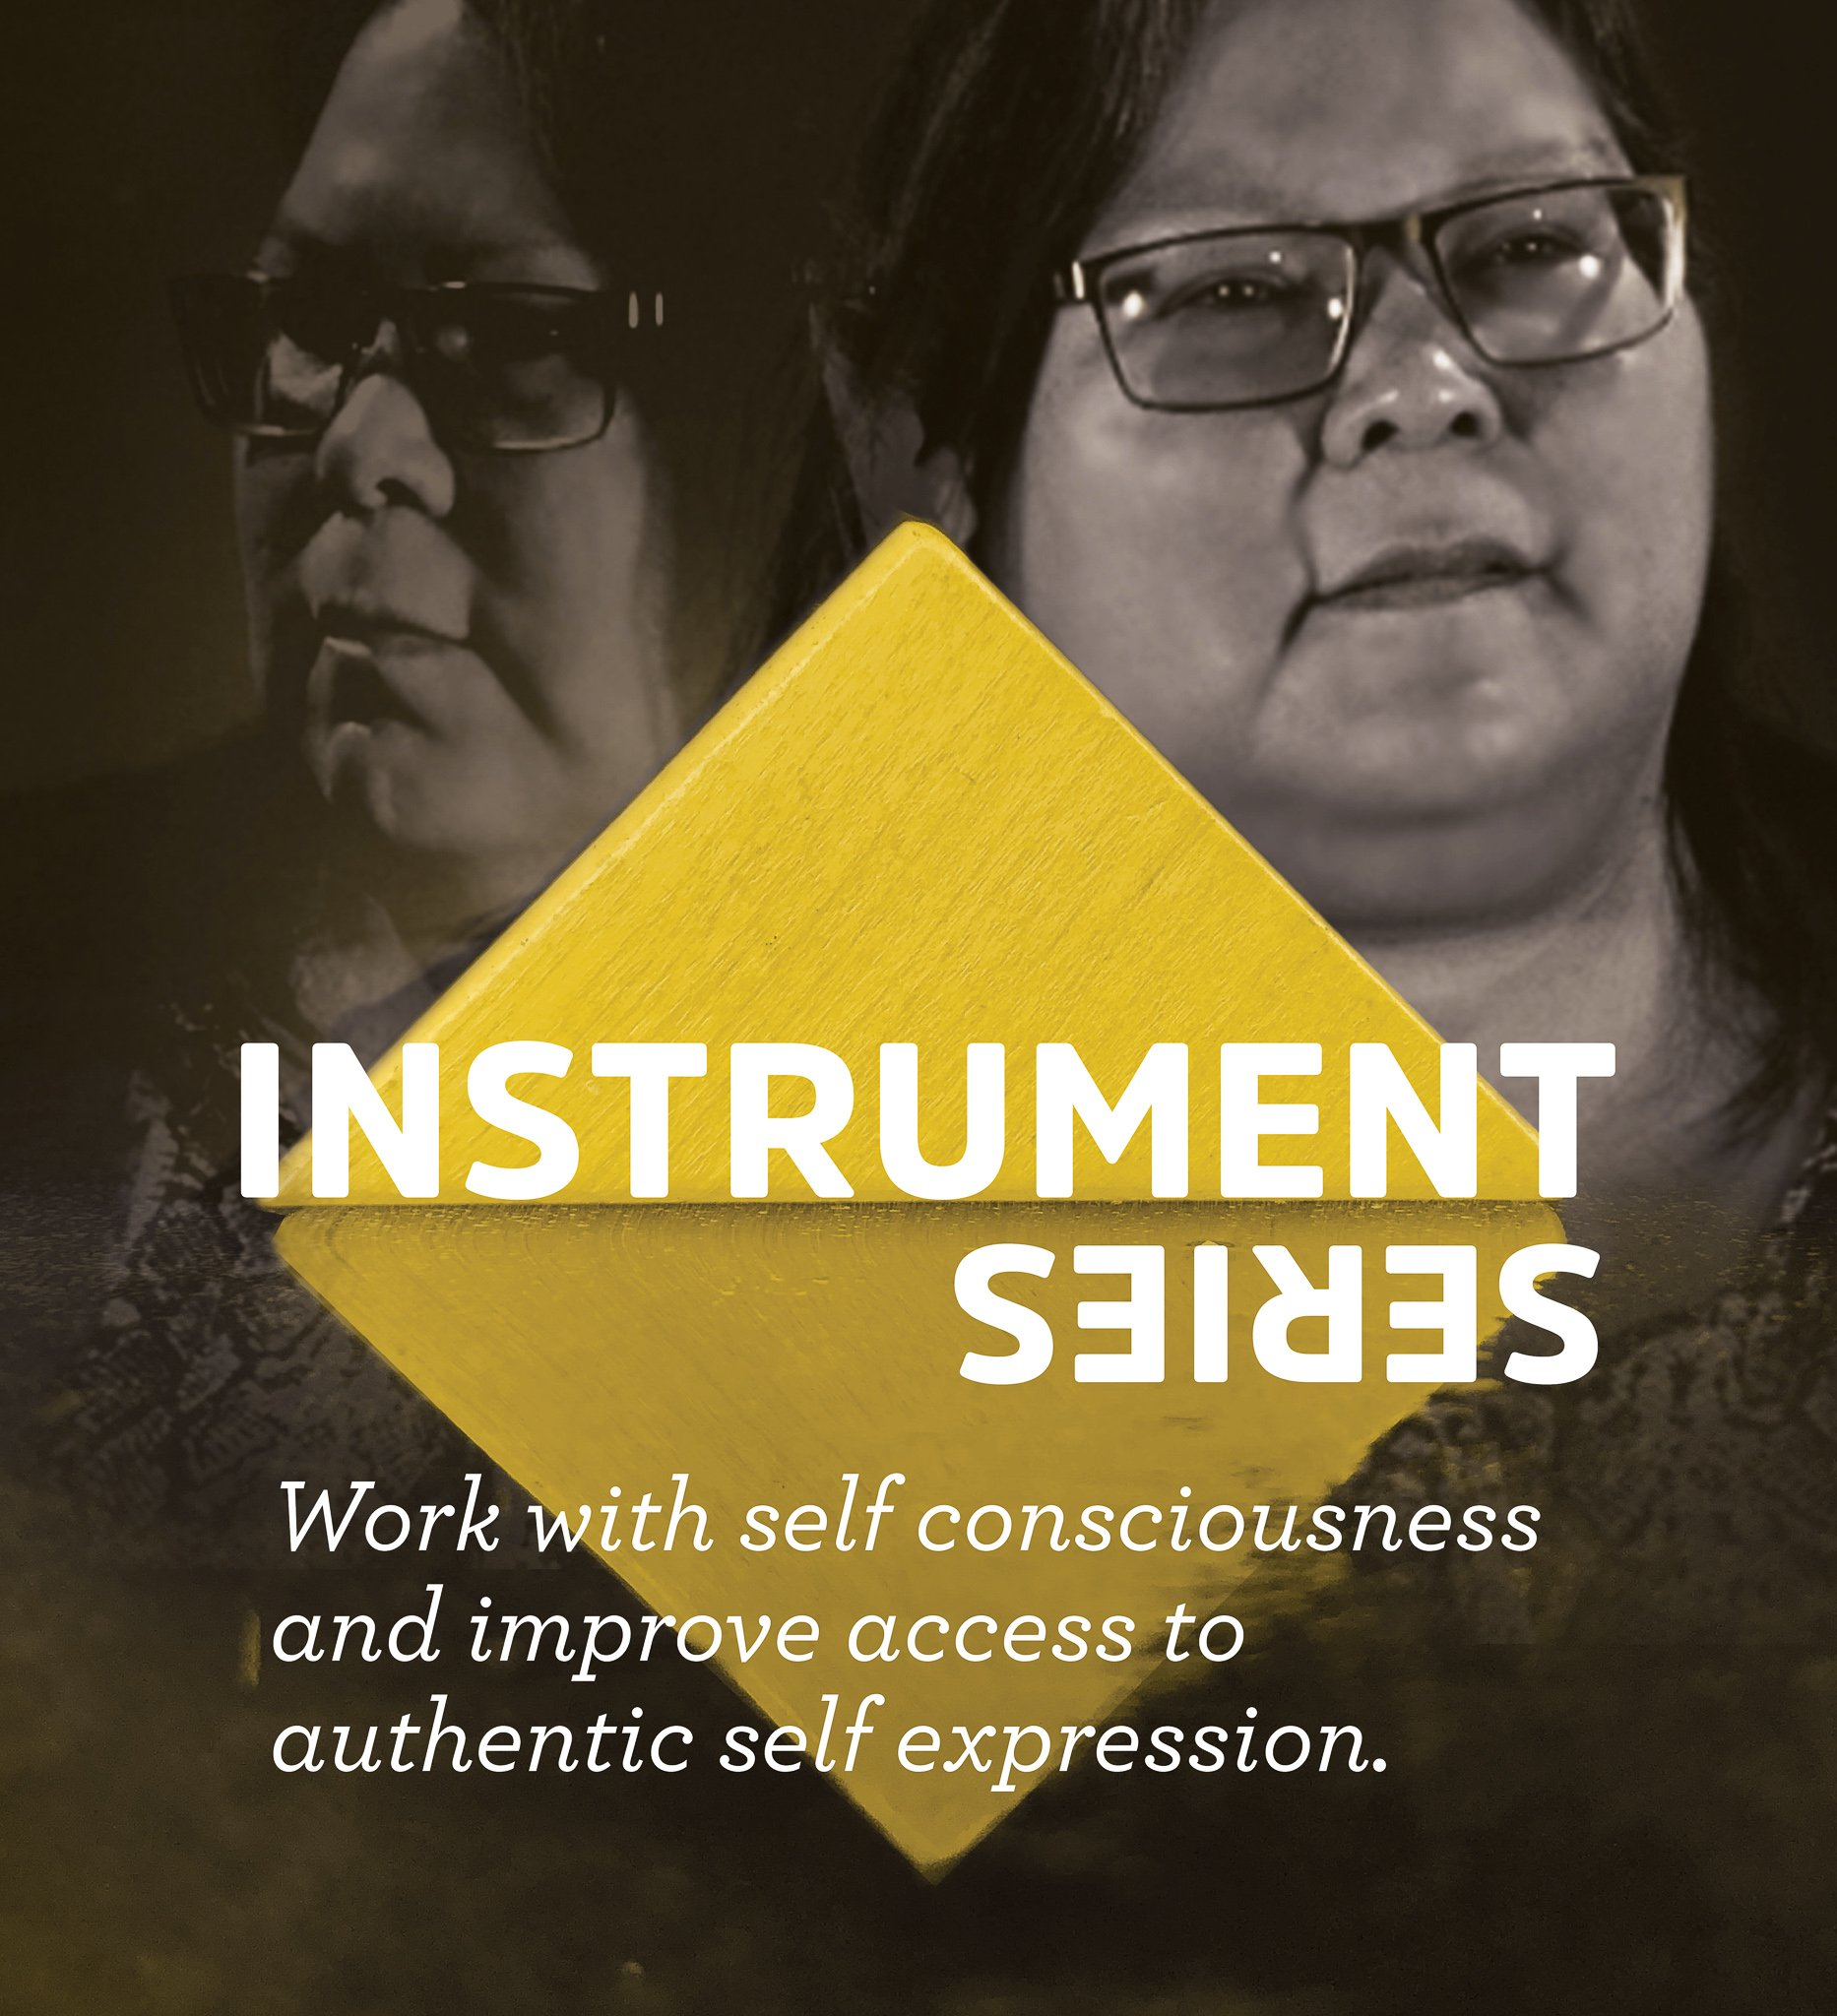 Instrument Series: Work with self consciousness and improve access to authentic self expression